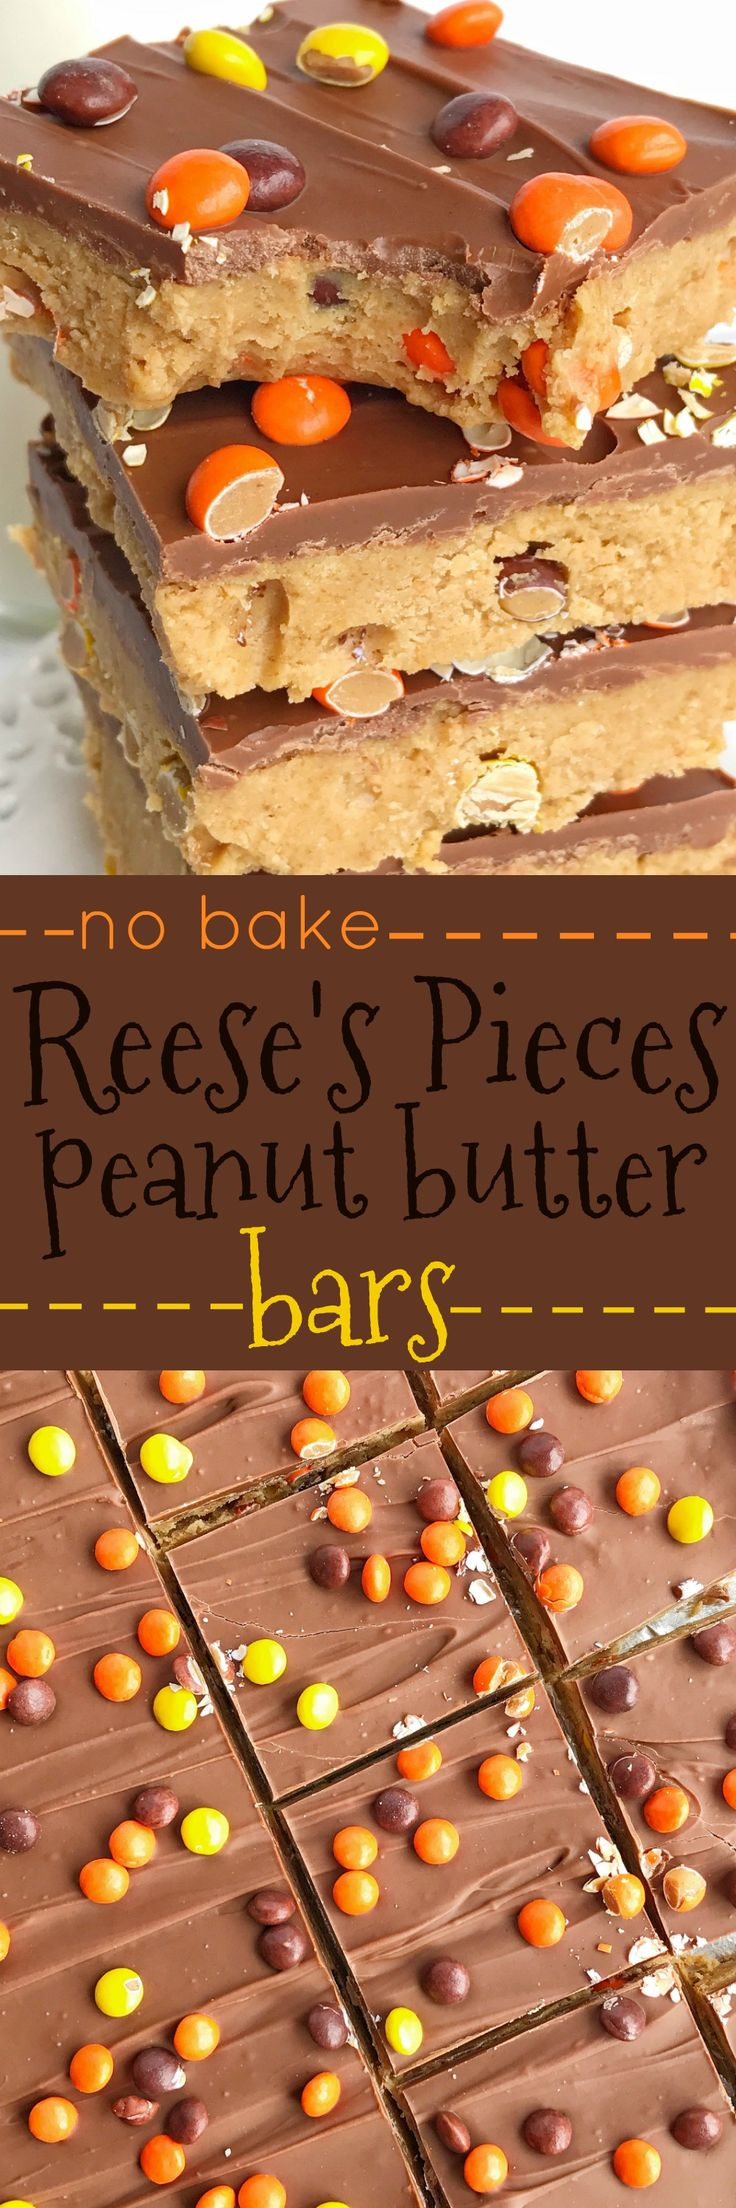 Reese's Pieces Peanut Butter Bars are an easy, no bake treat that's loaded with chocolate and peanut butter. They taste exactly like a Reese's! Add in some mini reese's pieces for the ultimate chocolate